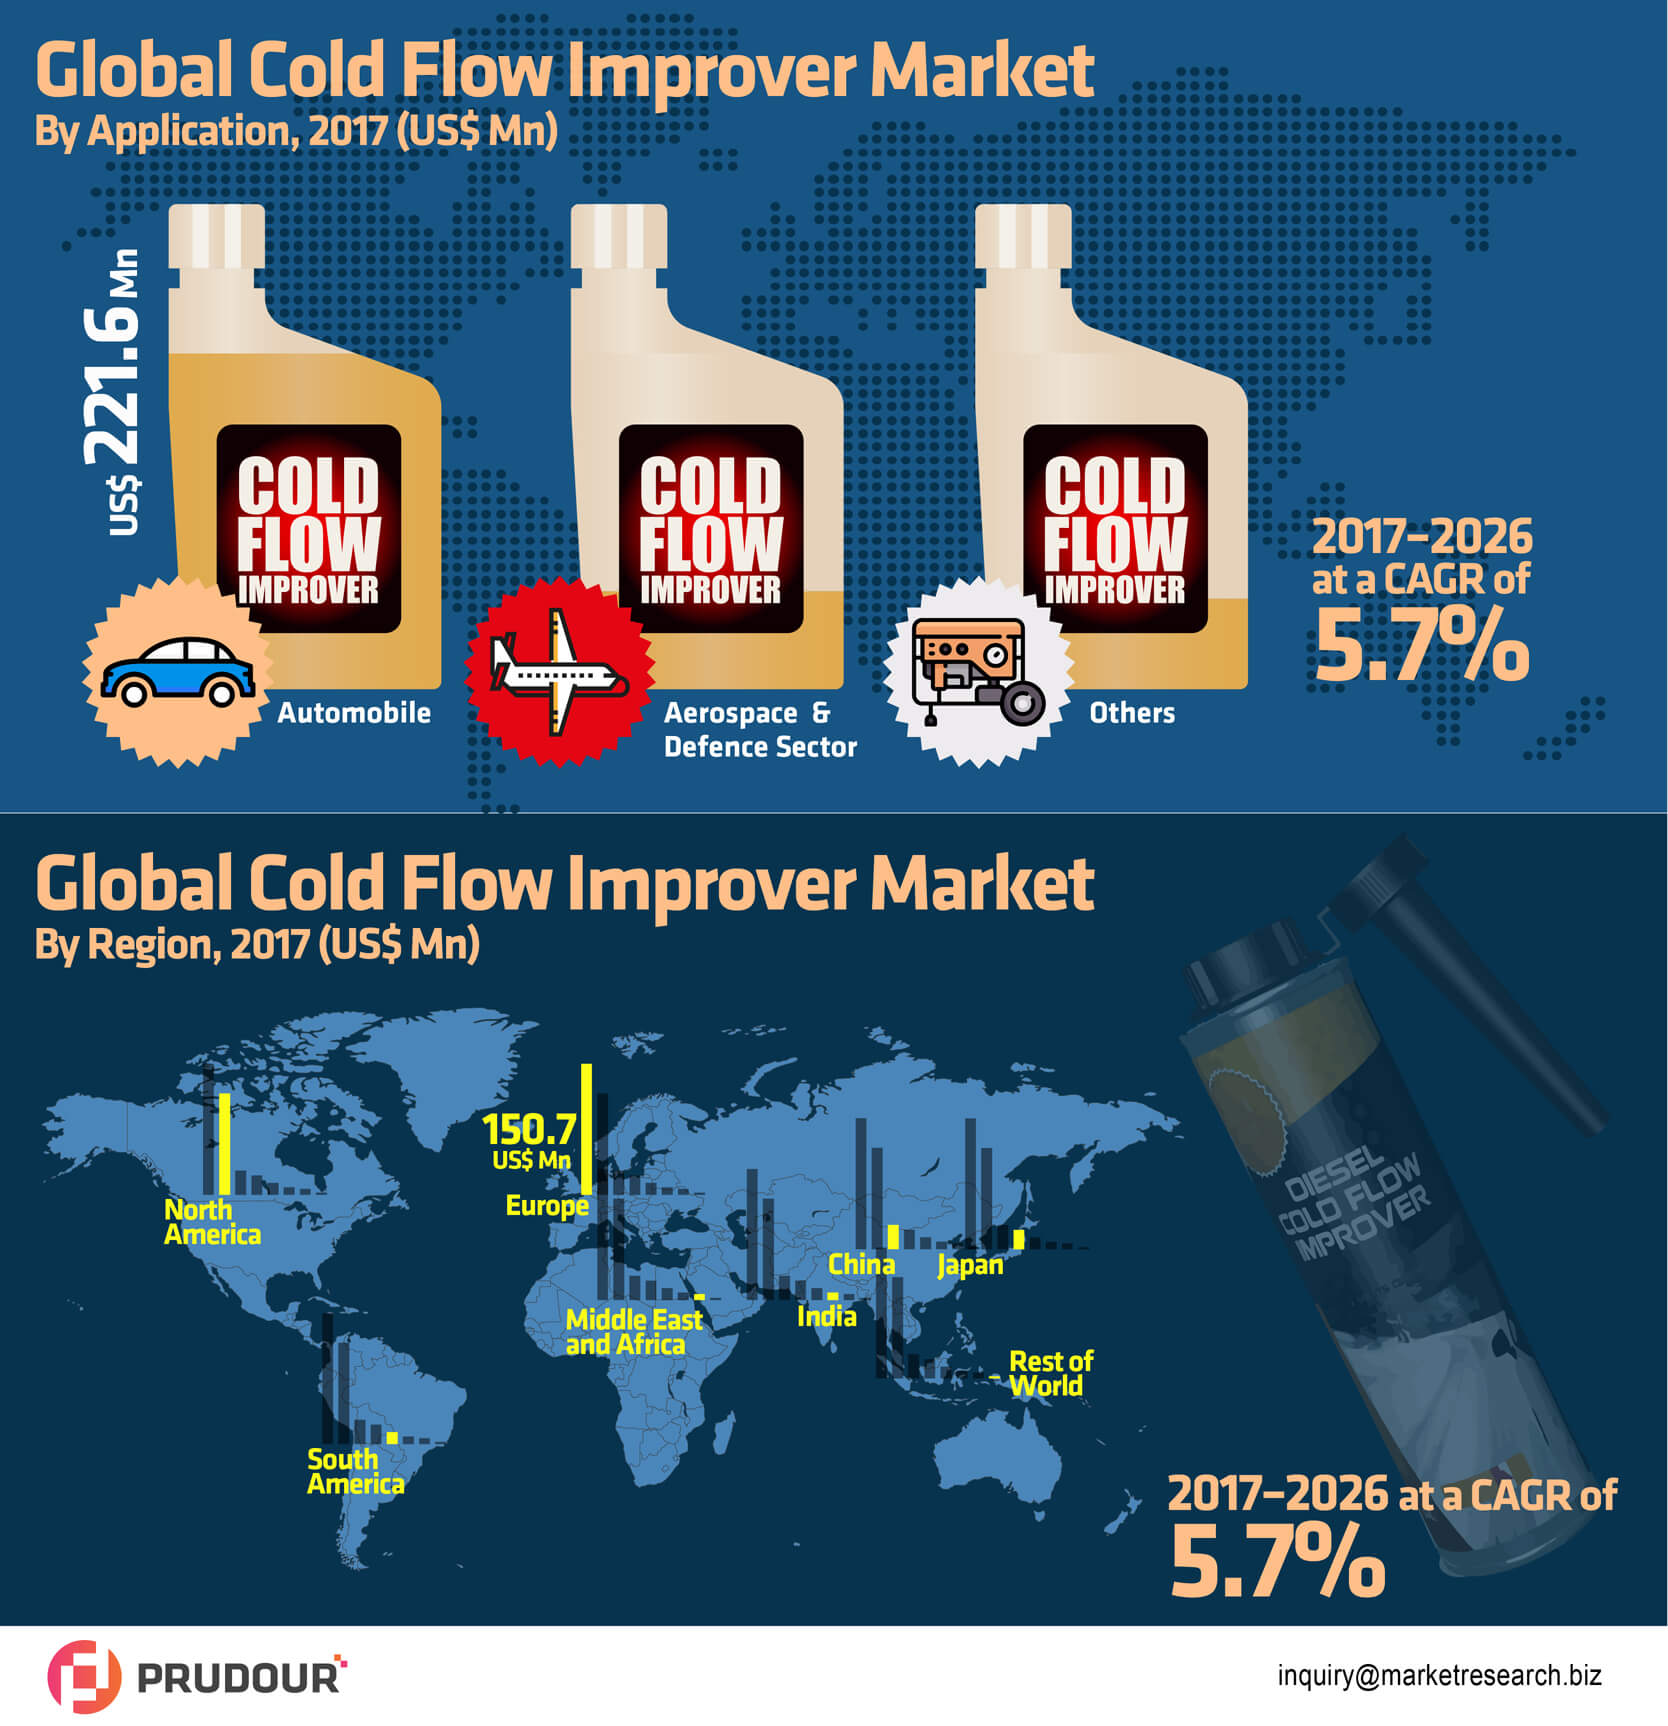 global-cold-flow-improver-market-infographic